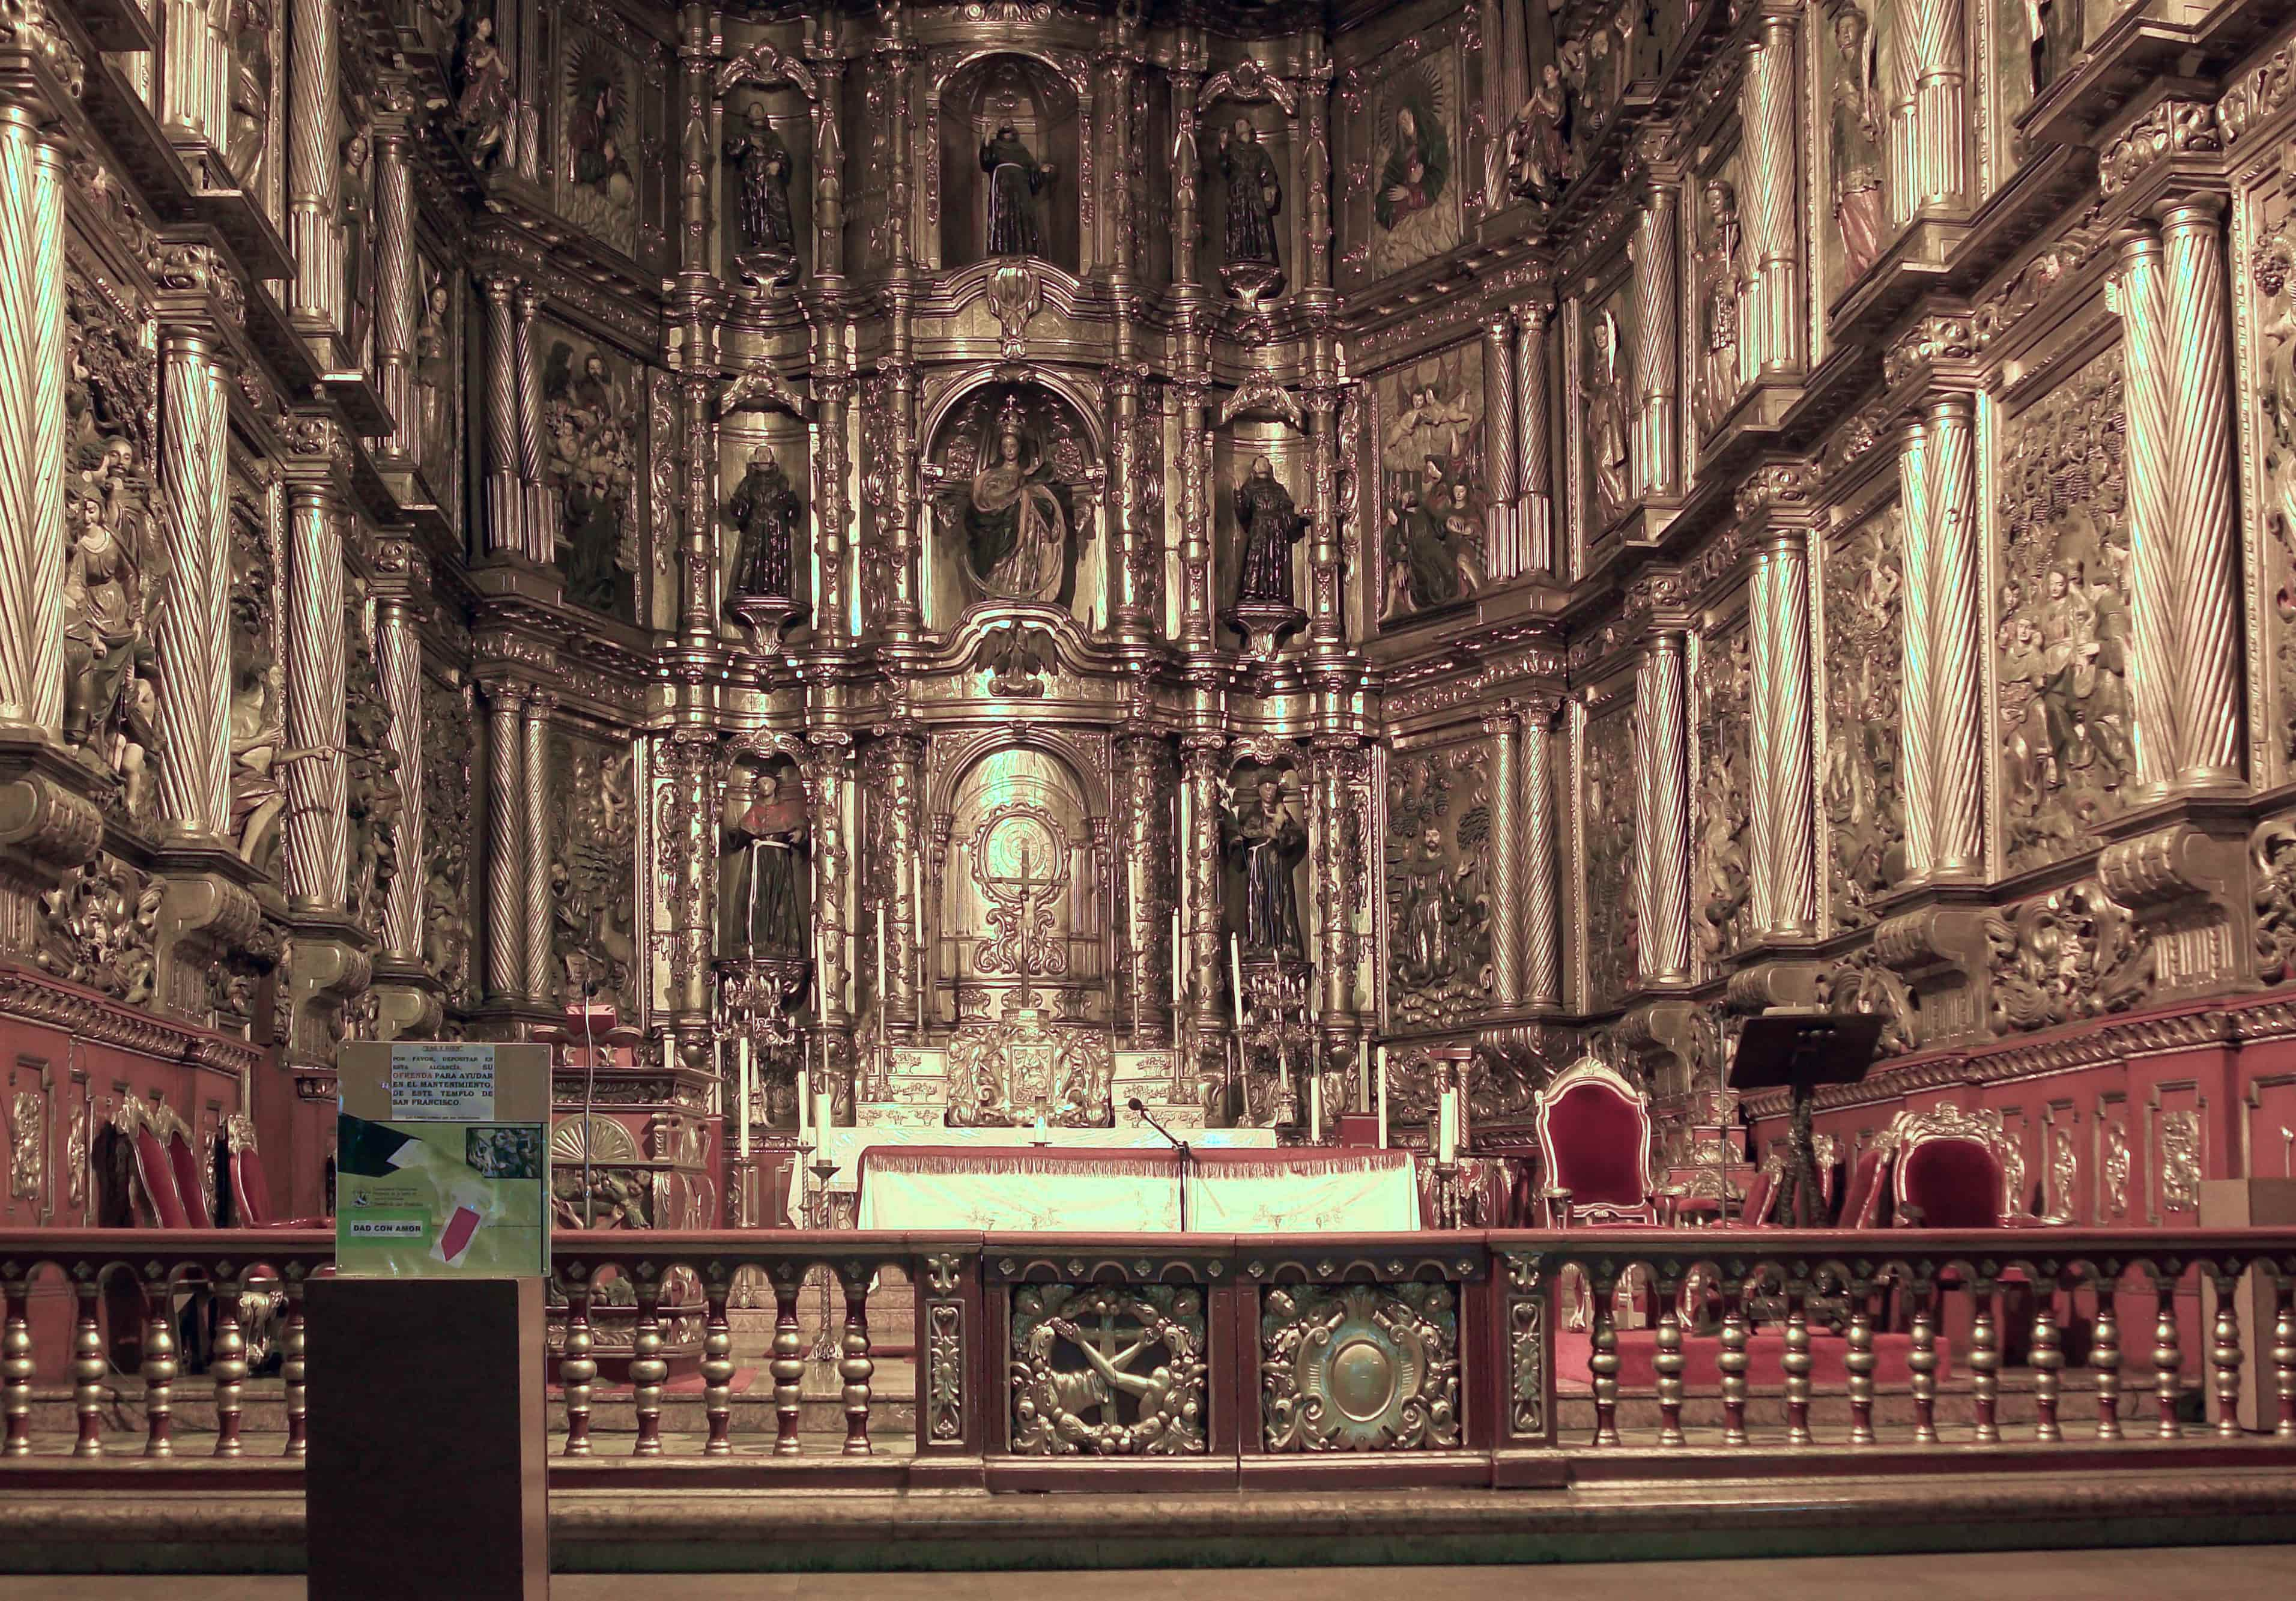 Altarpiece, Church of San Francisco (photo: Felipe Restrepo Acosta, CC BY-SA 3.0)